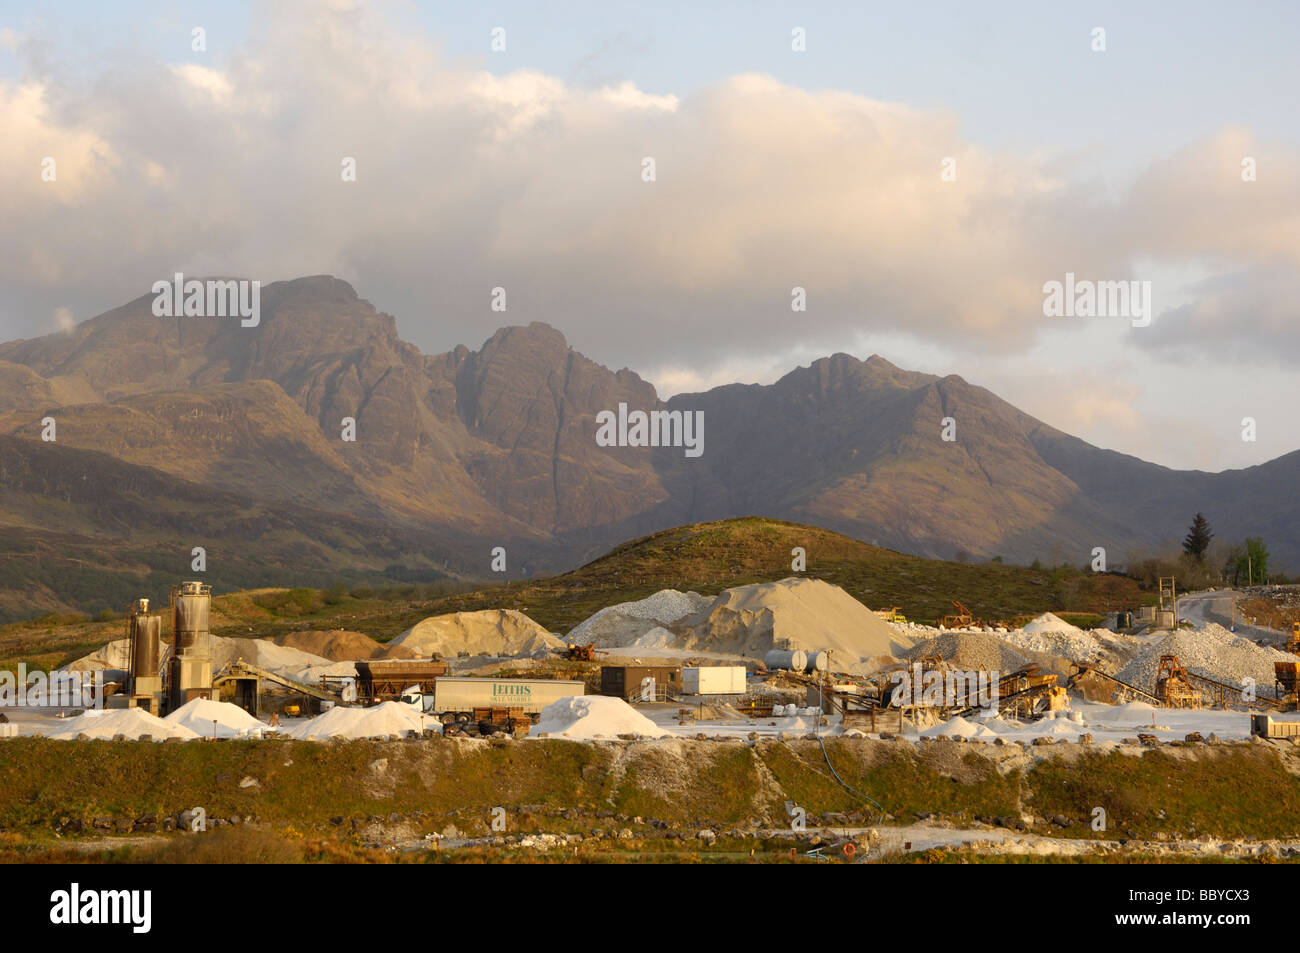 Skye marble quarry and Cullin Mountains, Torrin, Isle of Skye, Scotland - Stock Image